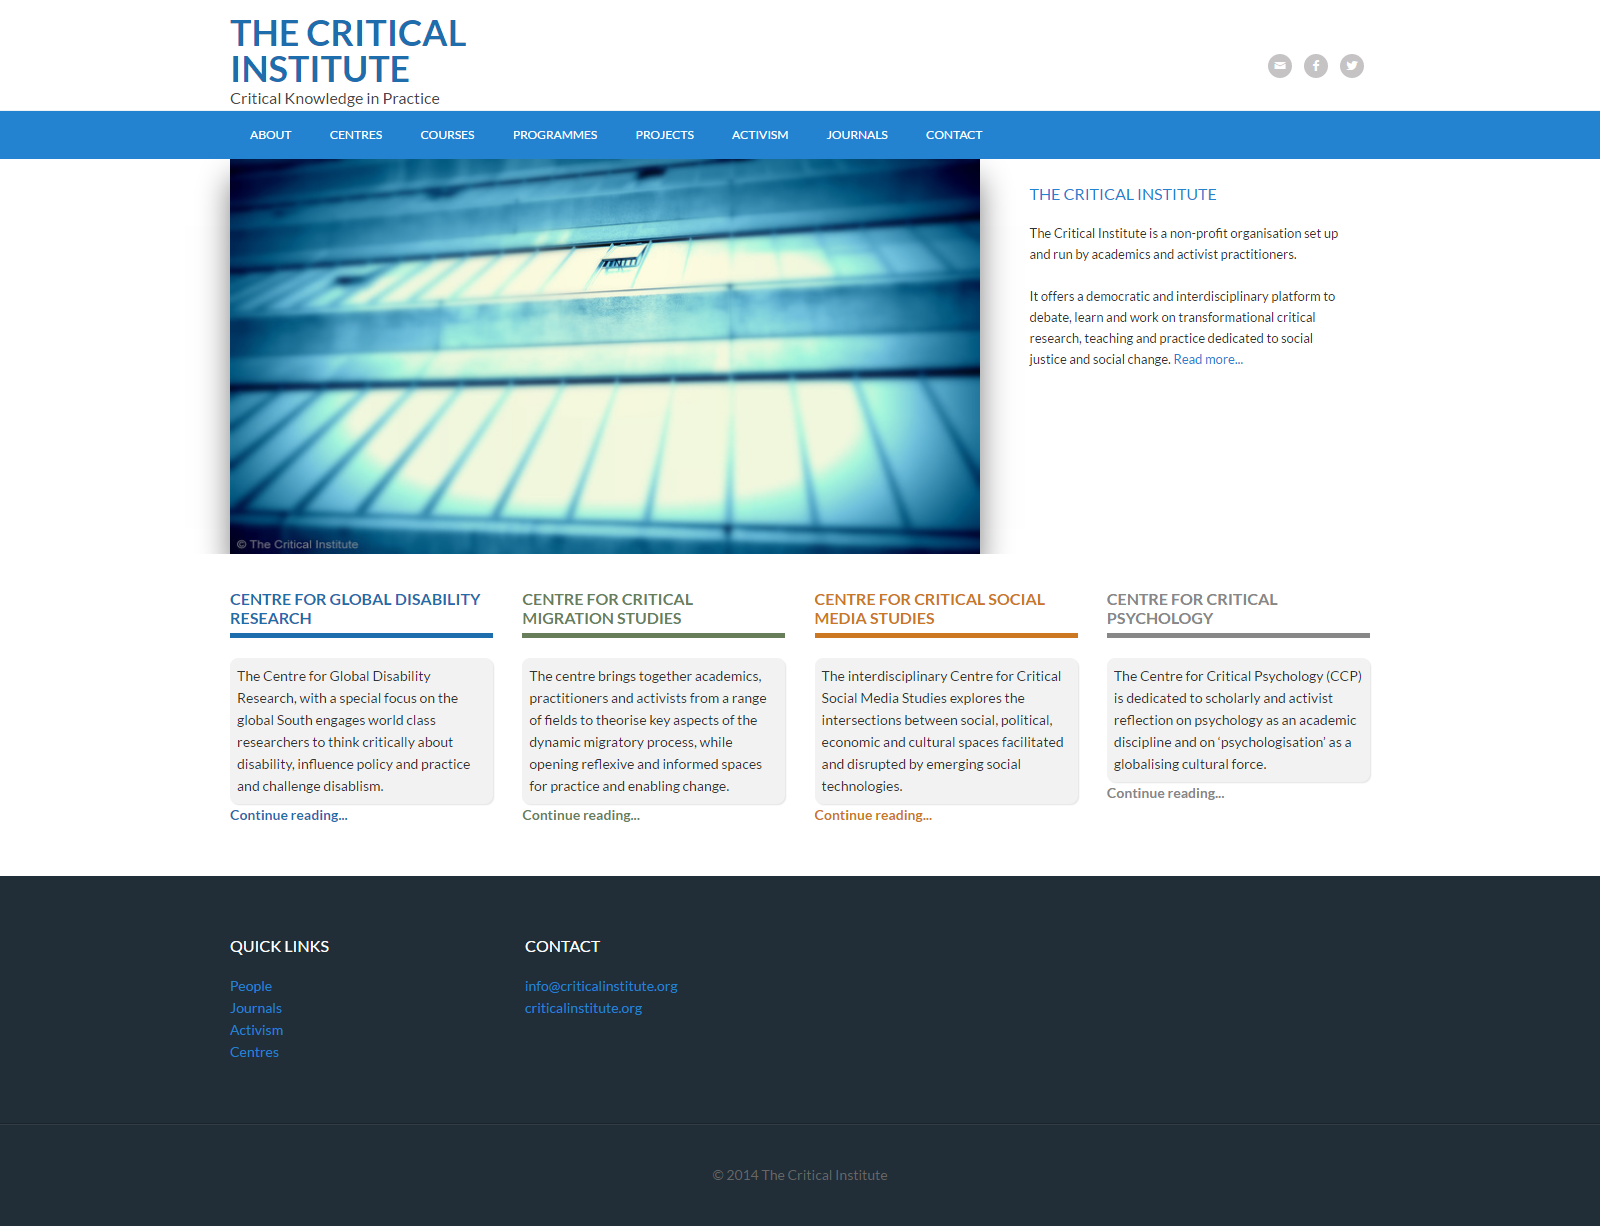 critical-insitute-website-design-by-creatista-design